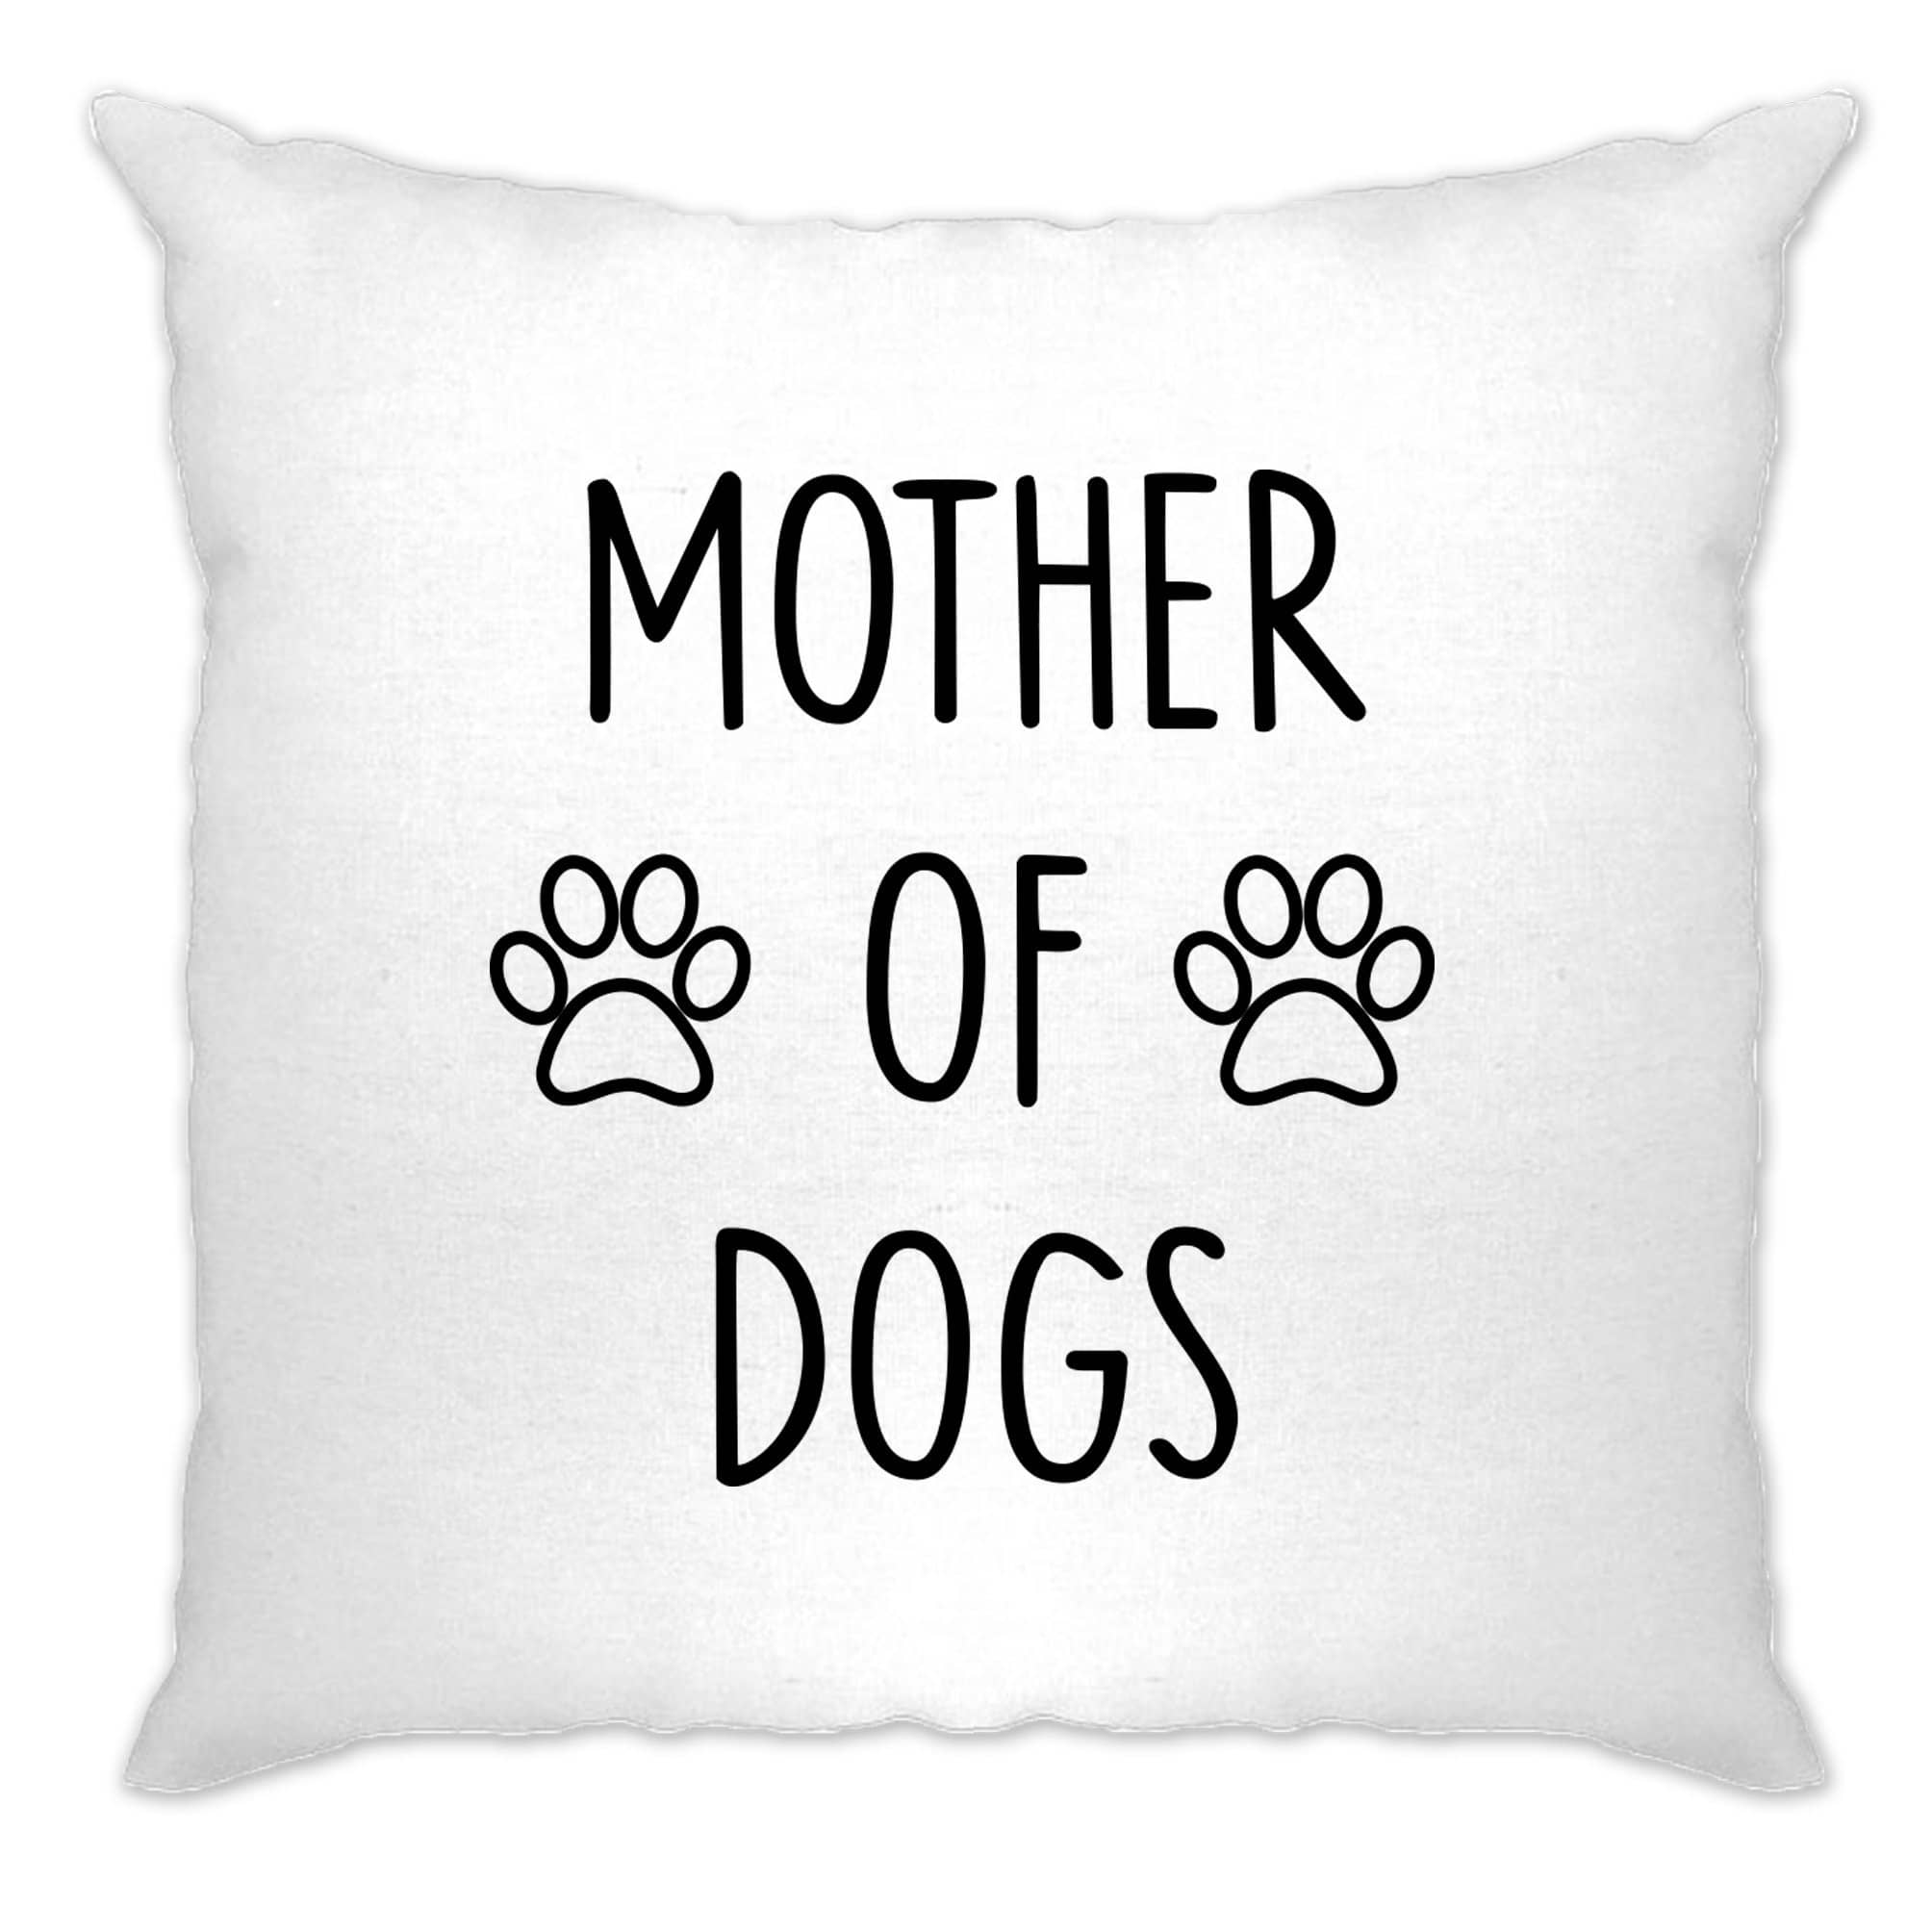 Novelty Pet Cushion Cover Mother Of Dogs Slogan